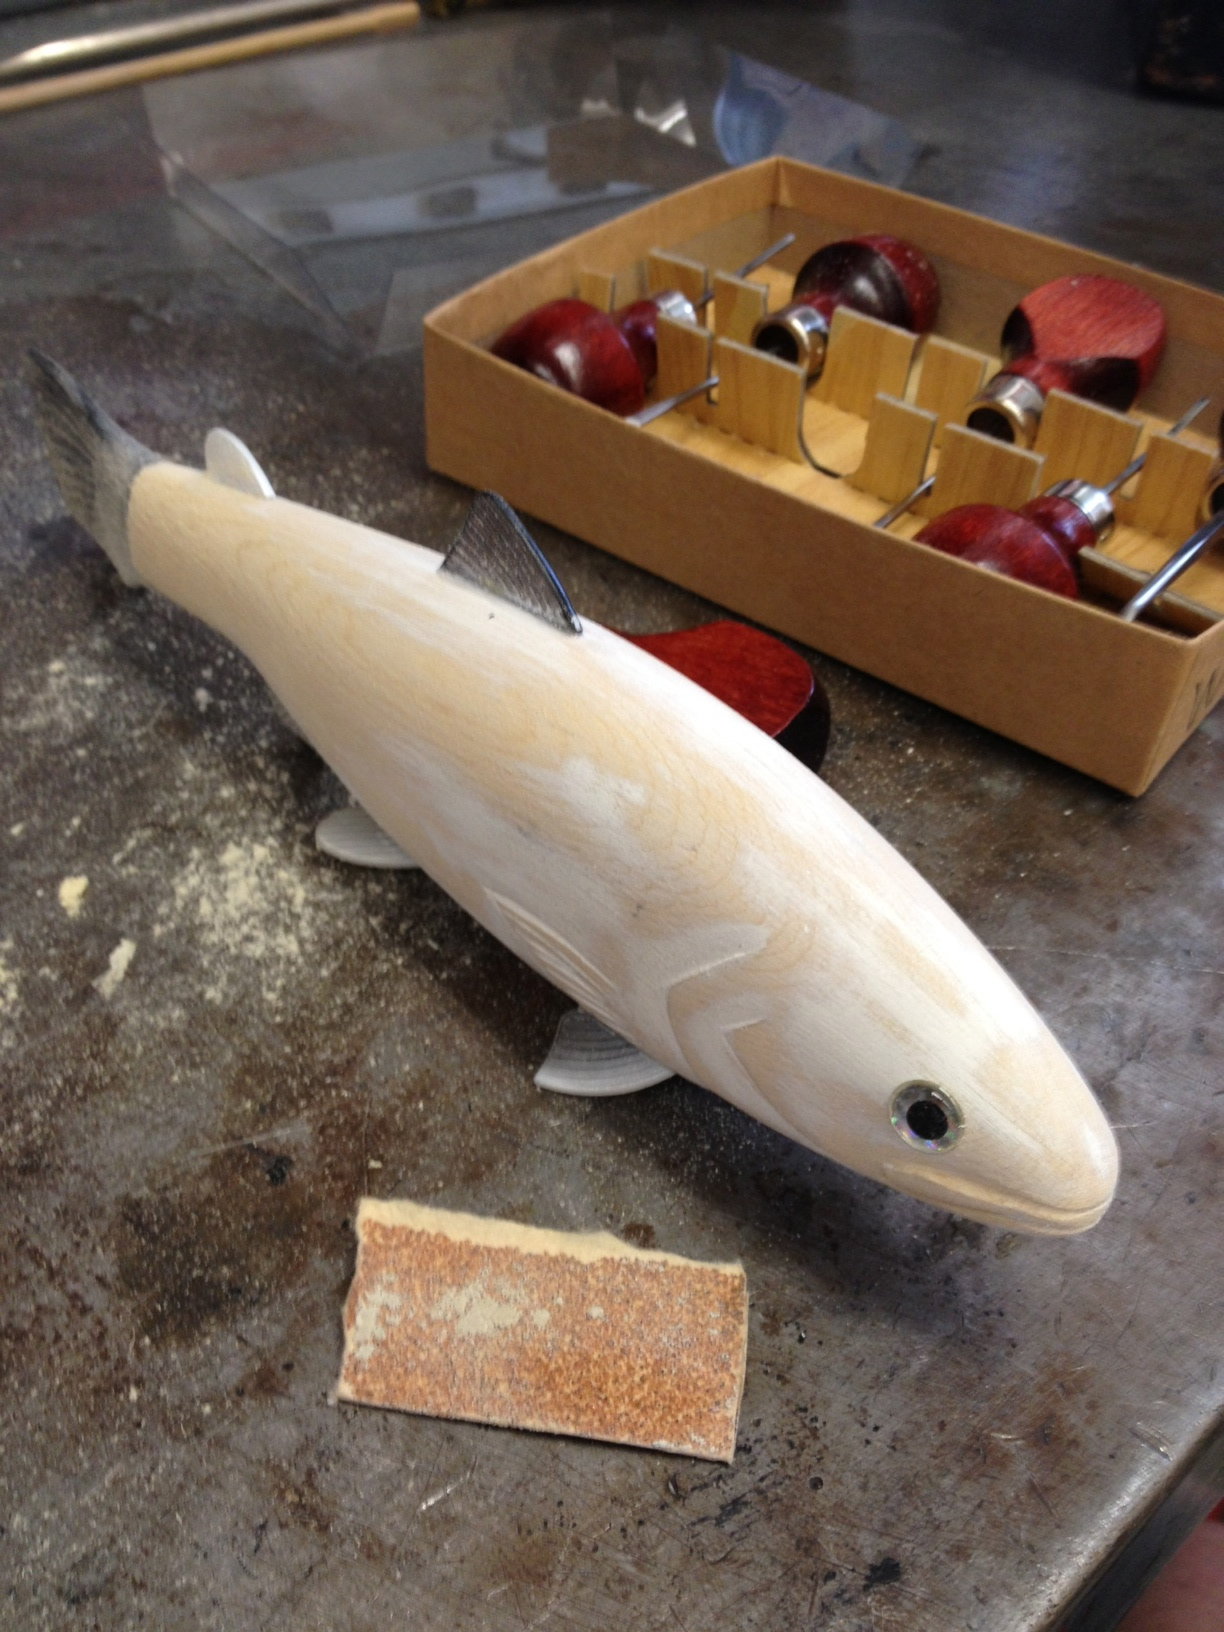 Wanna See A Trout Carved In 15 Seconds? OK, It Took A Little